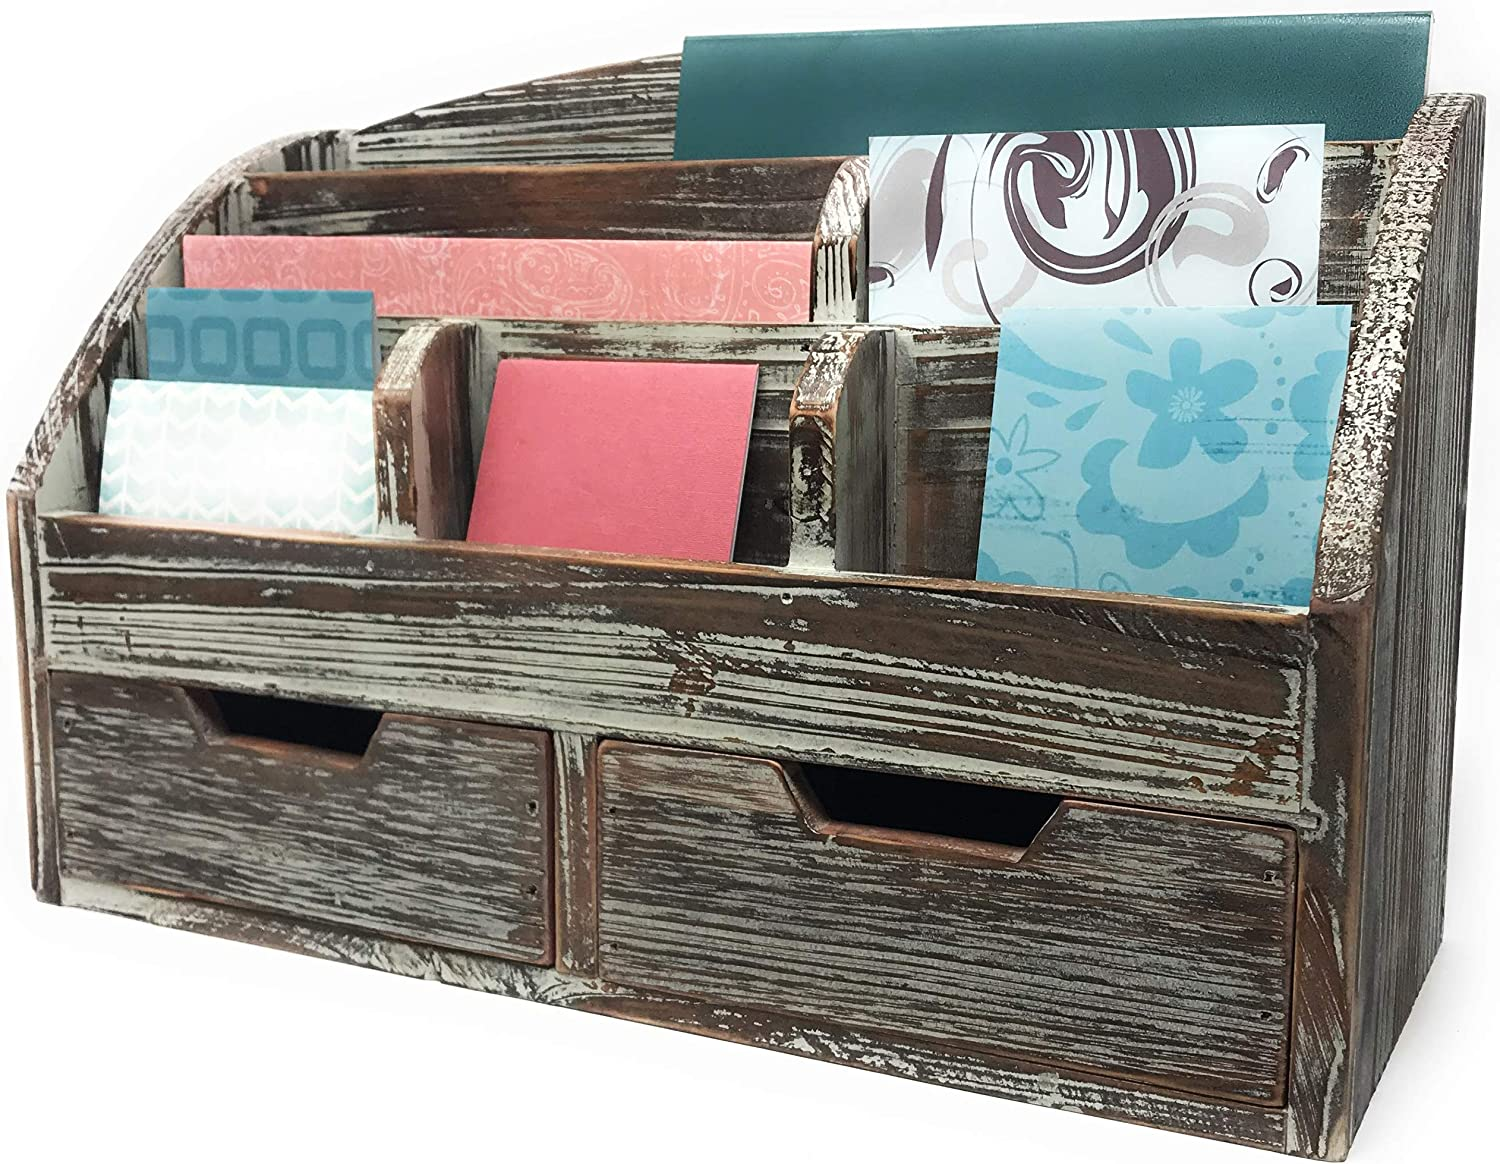 Farmhouse Decor Decorative Desk Organizer 3 Tier Mail Sorter Envelopes Folders Office Supplies Drawers Shelves Organizers Rustic Wood Distressed Finish